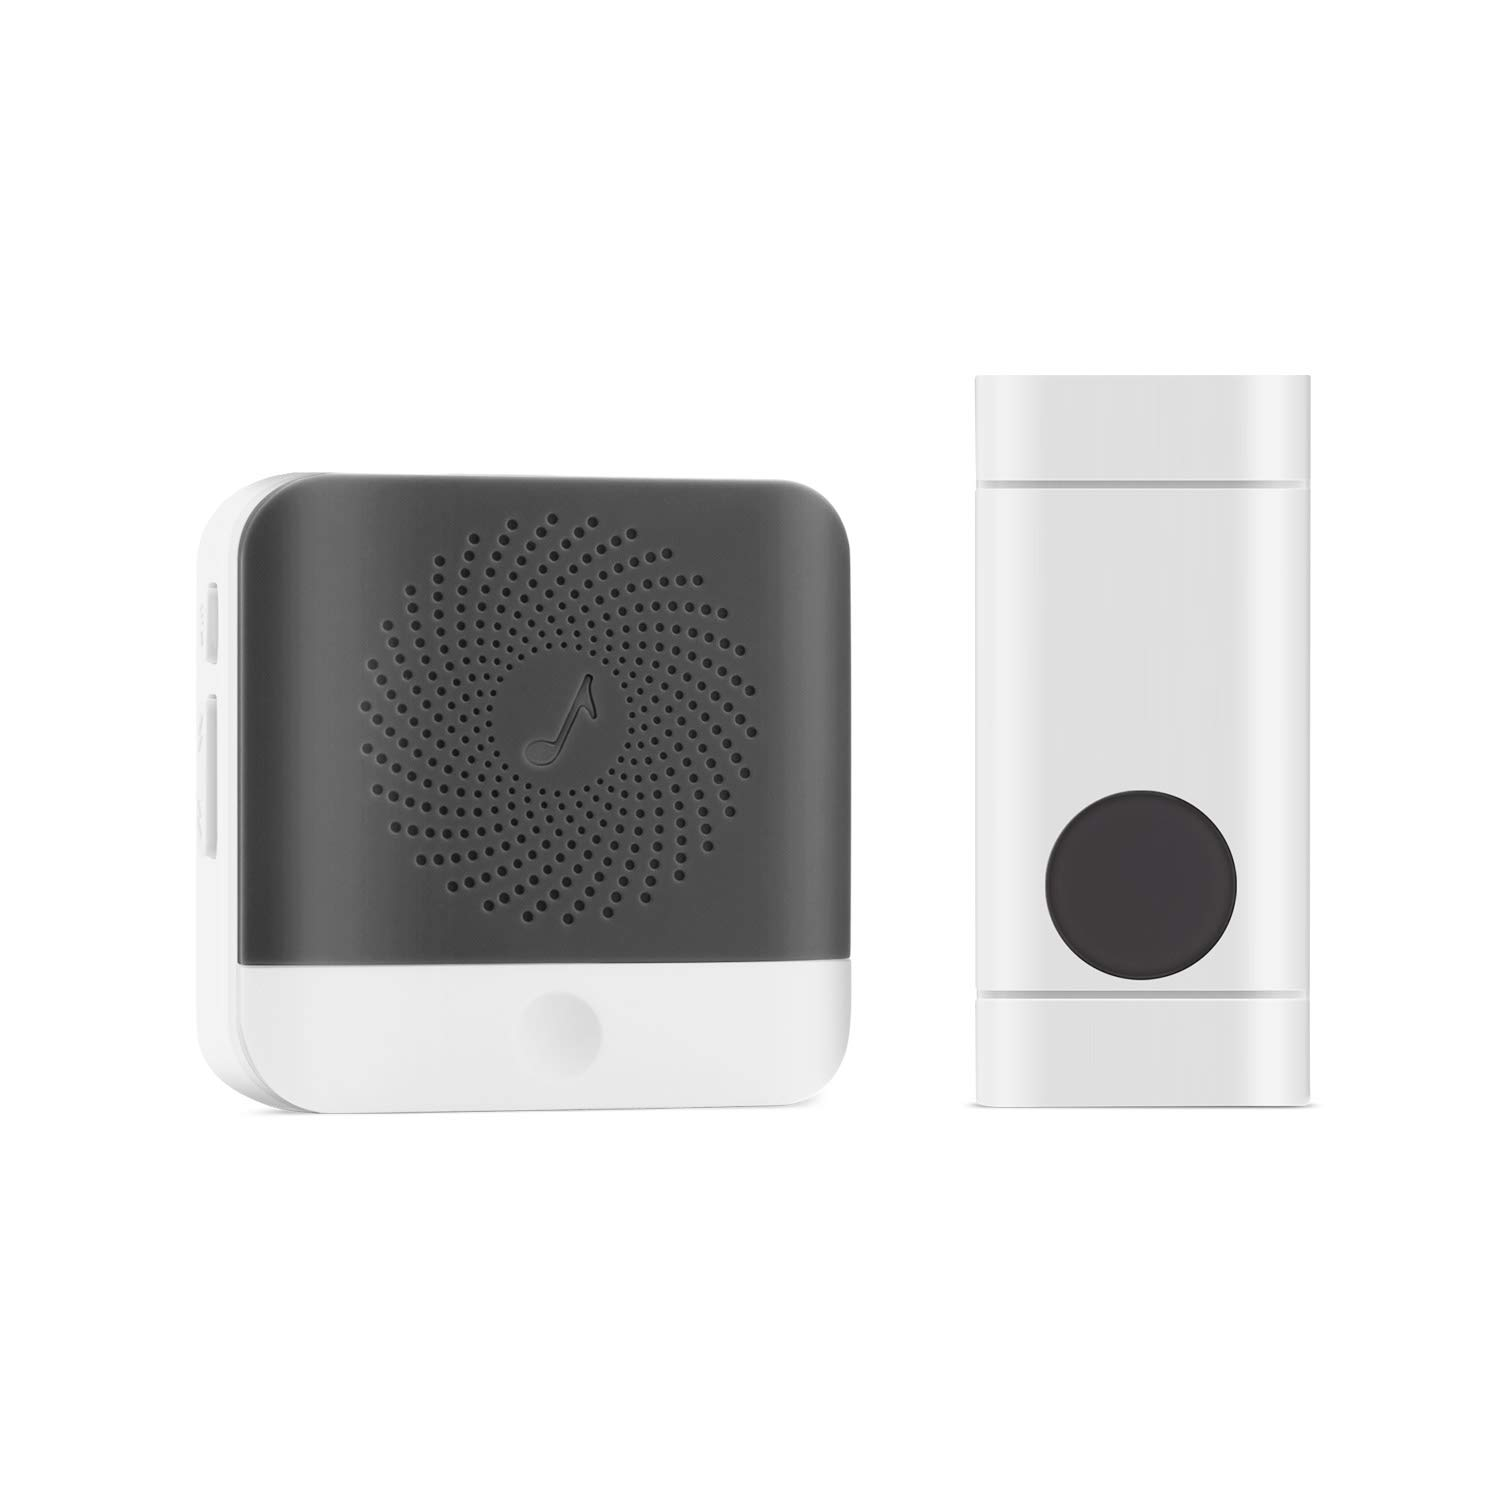 Wireless Doorbell, Waterproof Chime Kit With 52 Chimes,1000 Feet Operating,No Batteries Required For Receiver,1 Transmitter and 1 Receiver with 4 Level Volume Loud Decorative Doorbell